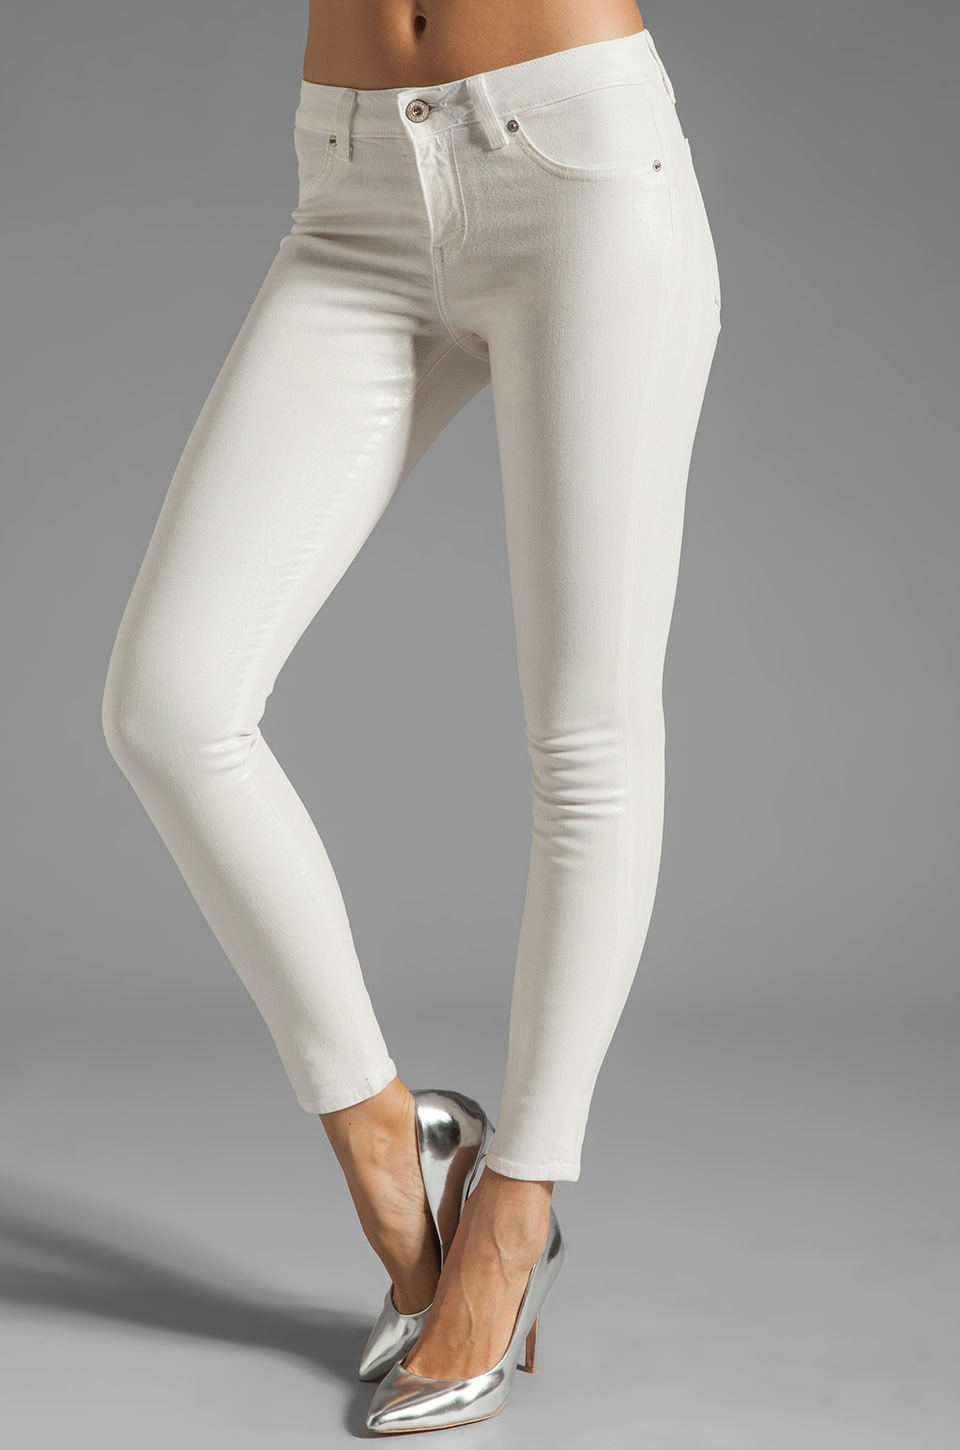 Dakota Collective Khloe Skinny in Iridescent Coated White